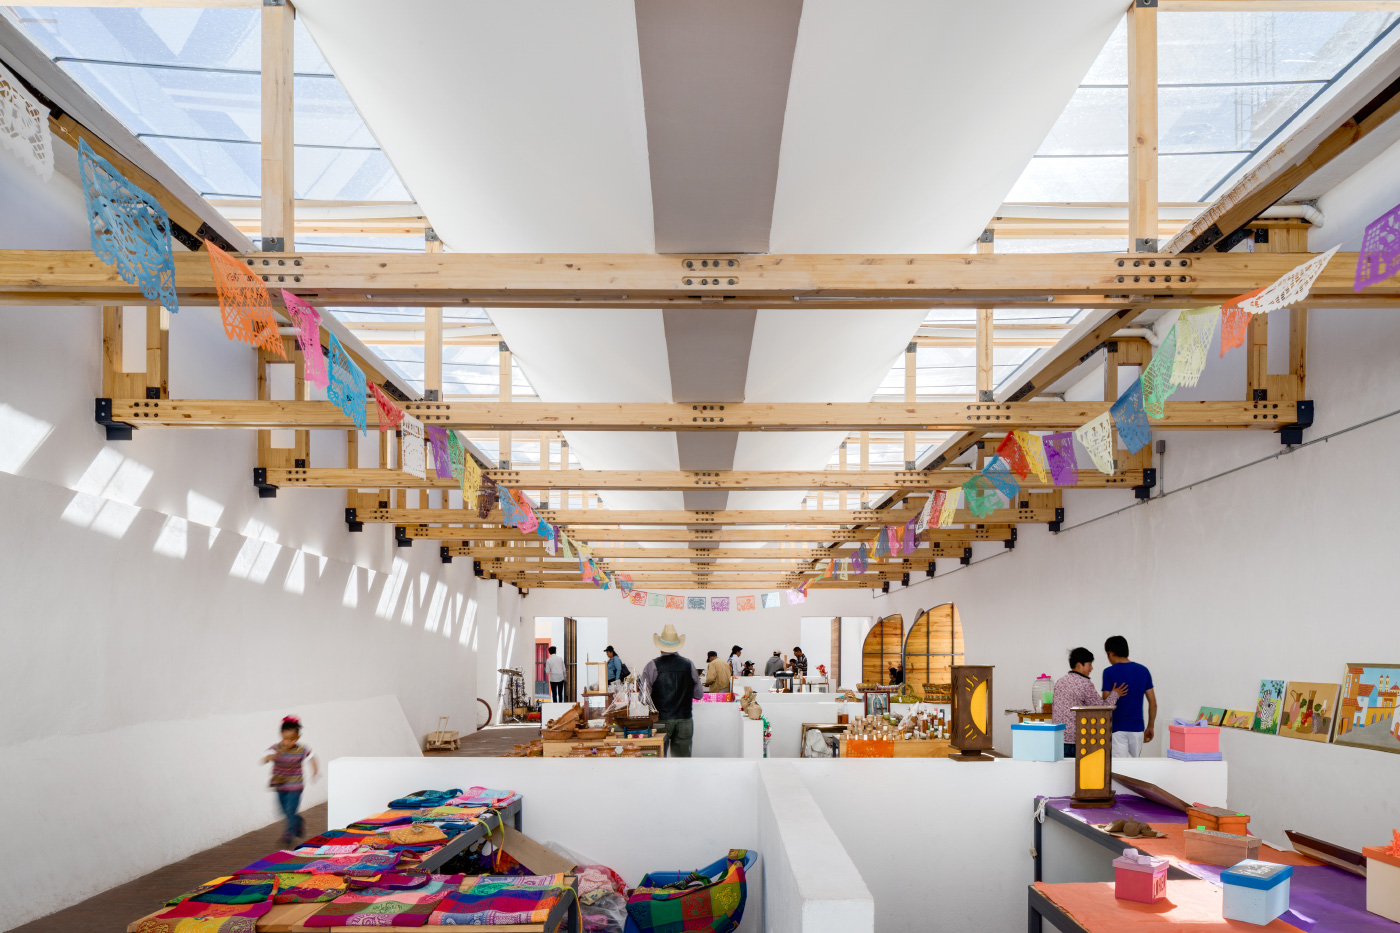 An open-air market hall designed by Architectural League Prize winner Vrtical